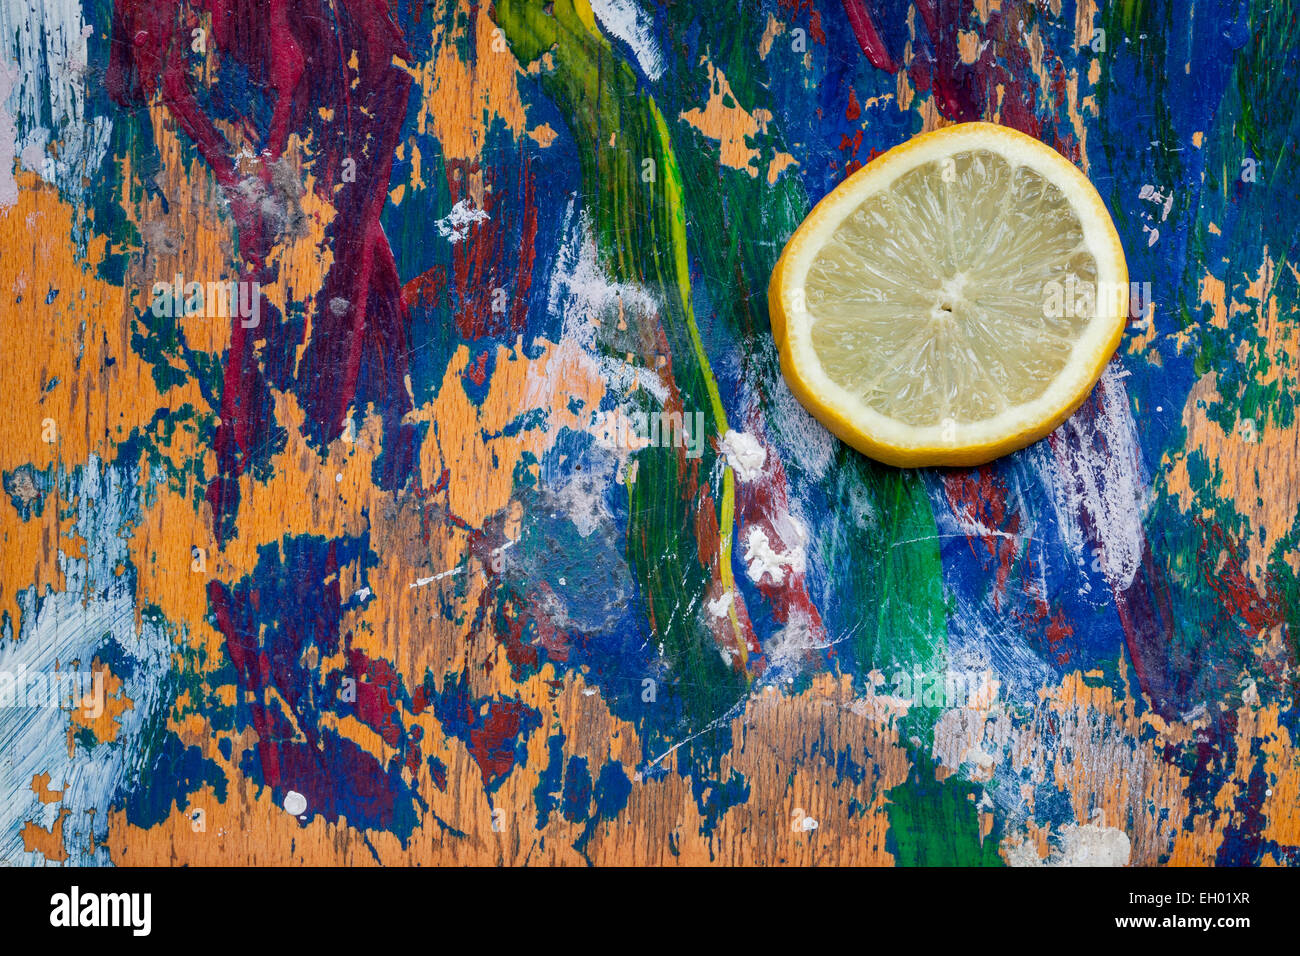 Lemon slice on a colorful background, plenty of room for your text - Stock Image